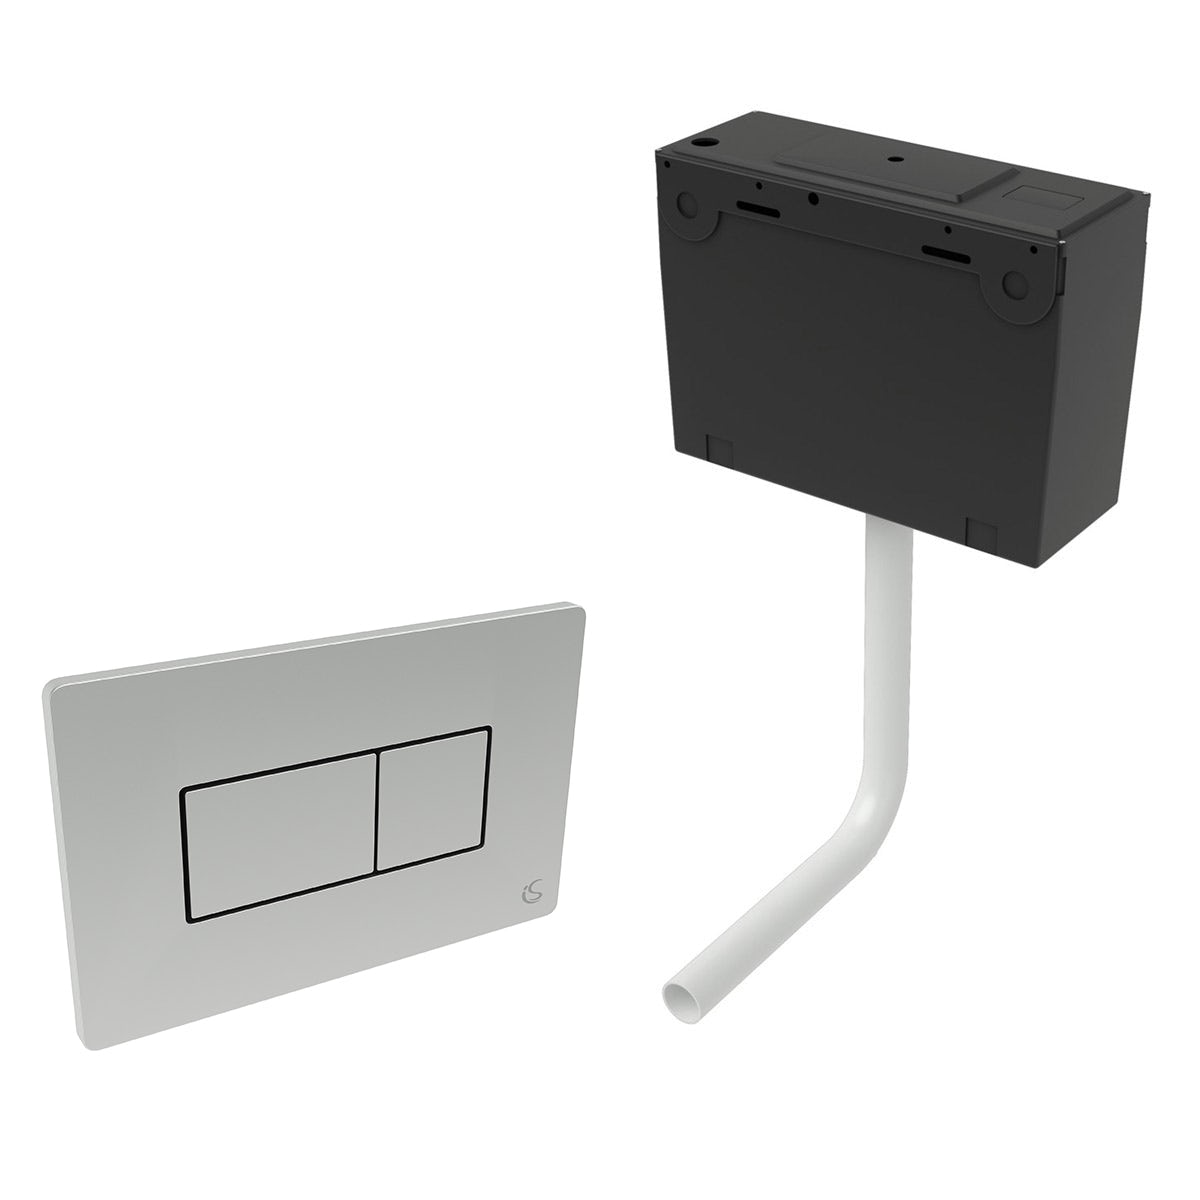 Ideal Standard concealed toilet cistern with top inlet and chrome flush plate